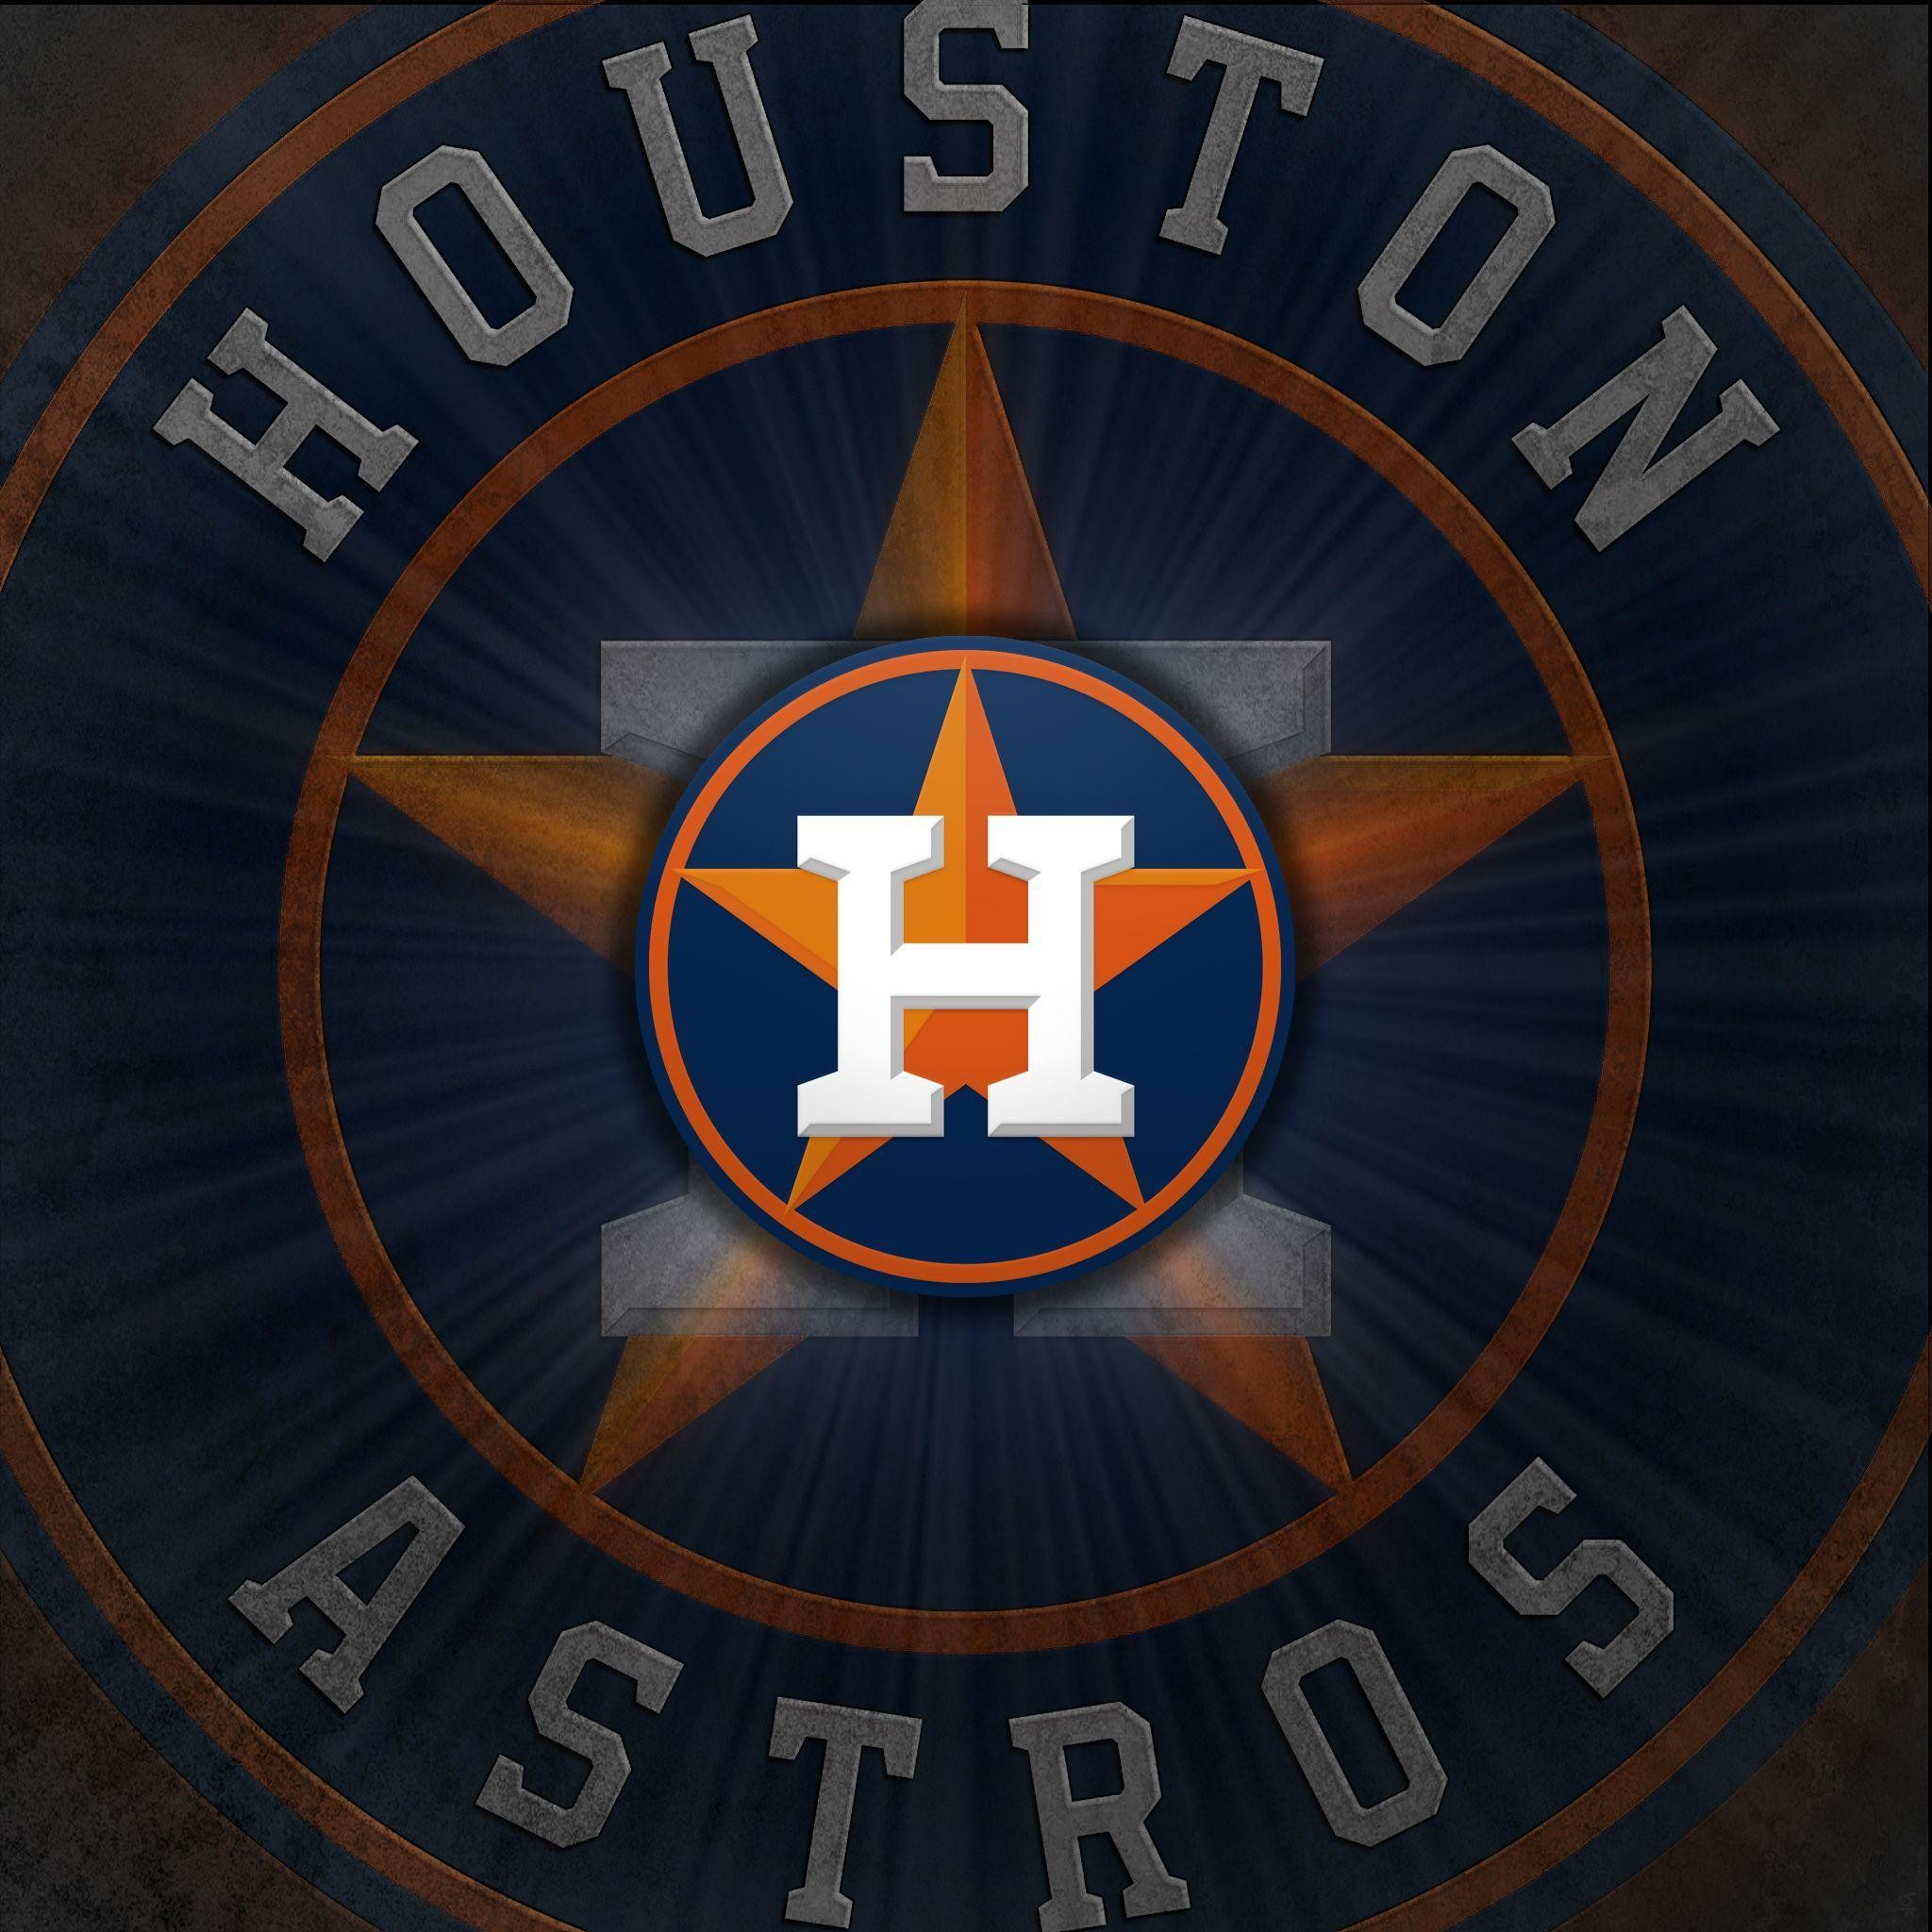 2048x2048 Houston Astros Wallpapers - Wallpaper Cave